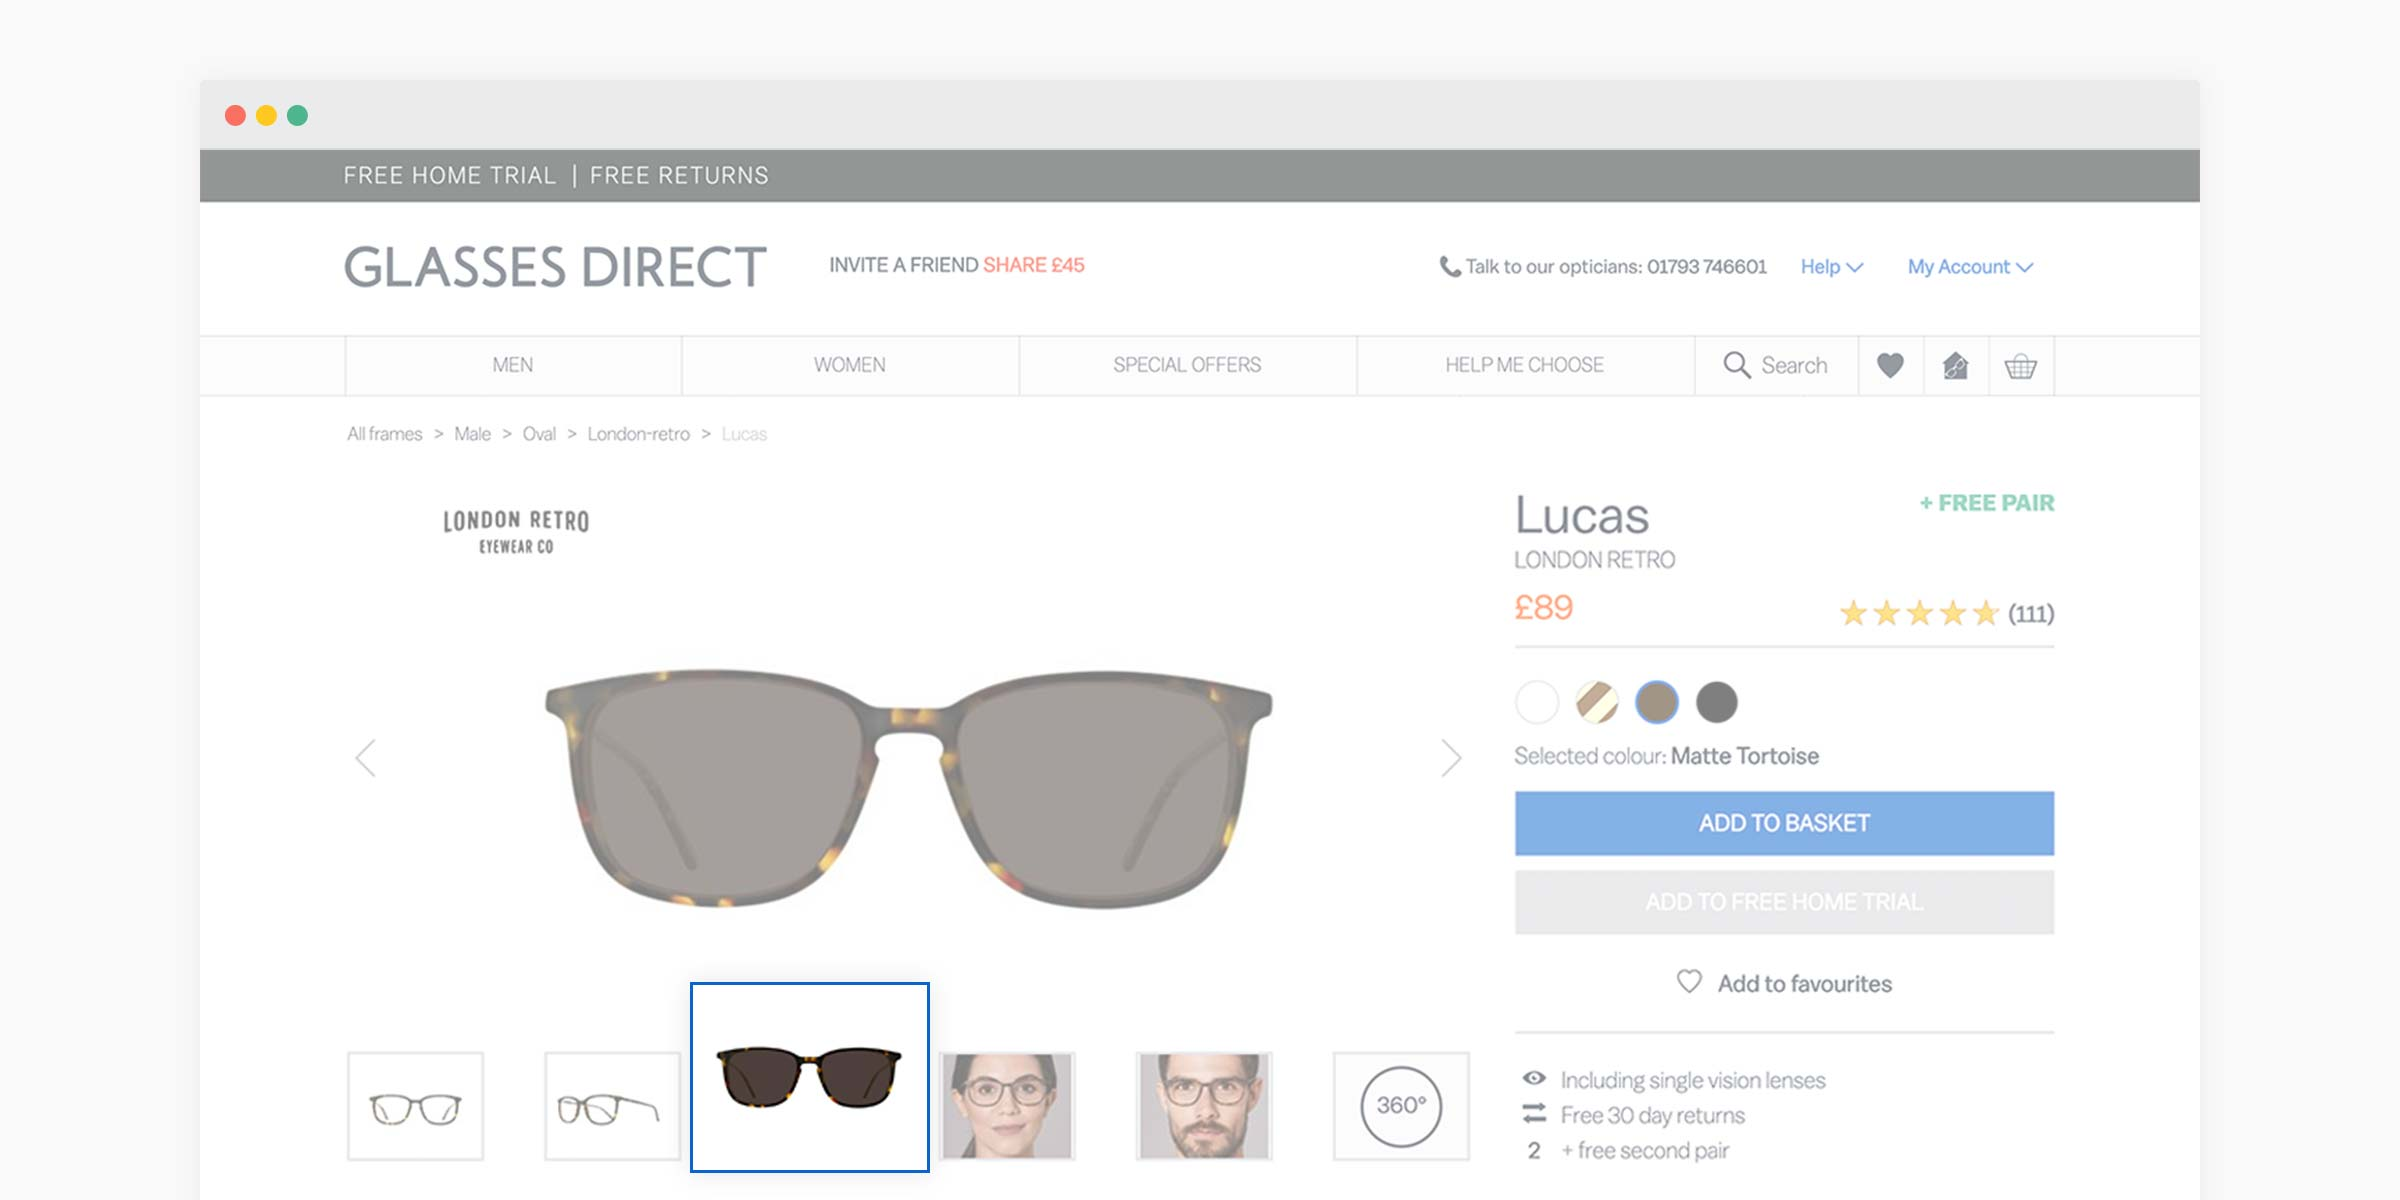 Glasses Direct product page with the preview image for tinted lenses highlighted